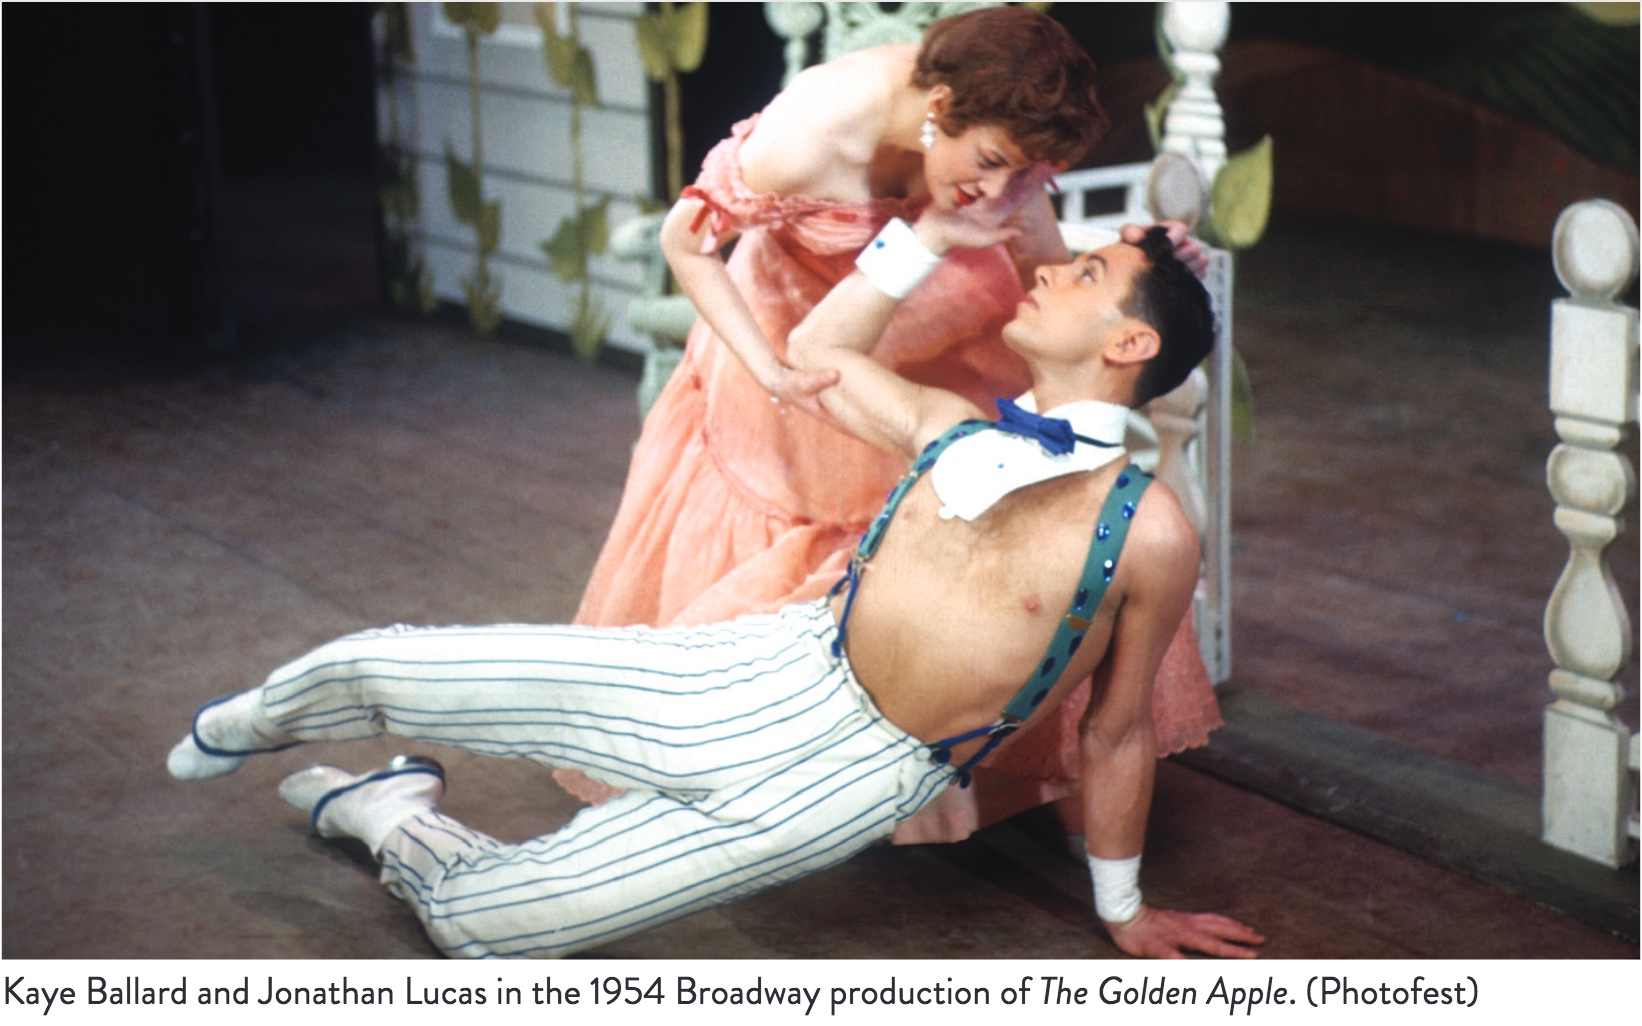 The Golden Apple 1954 pic